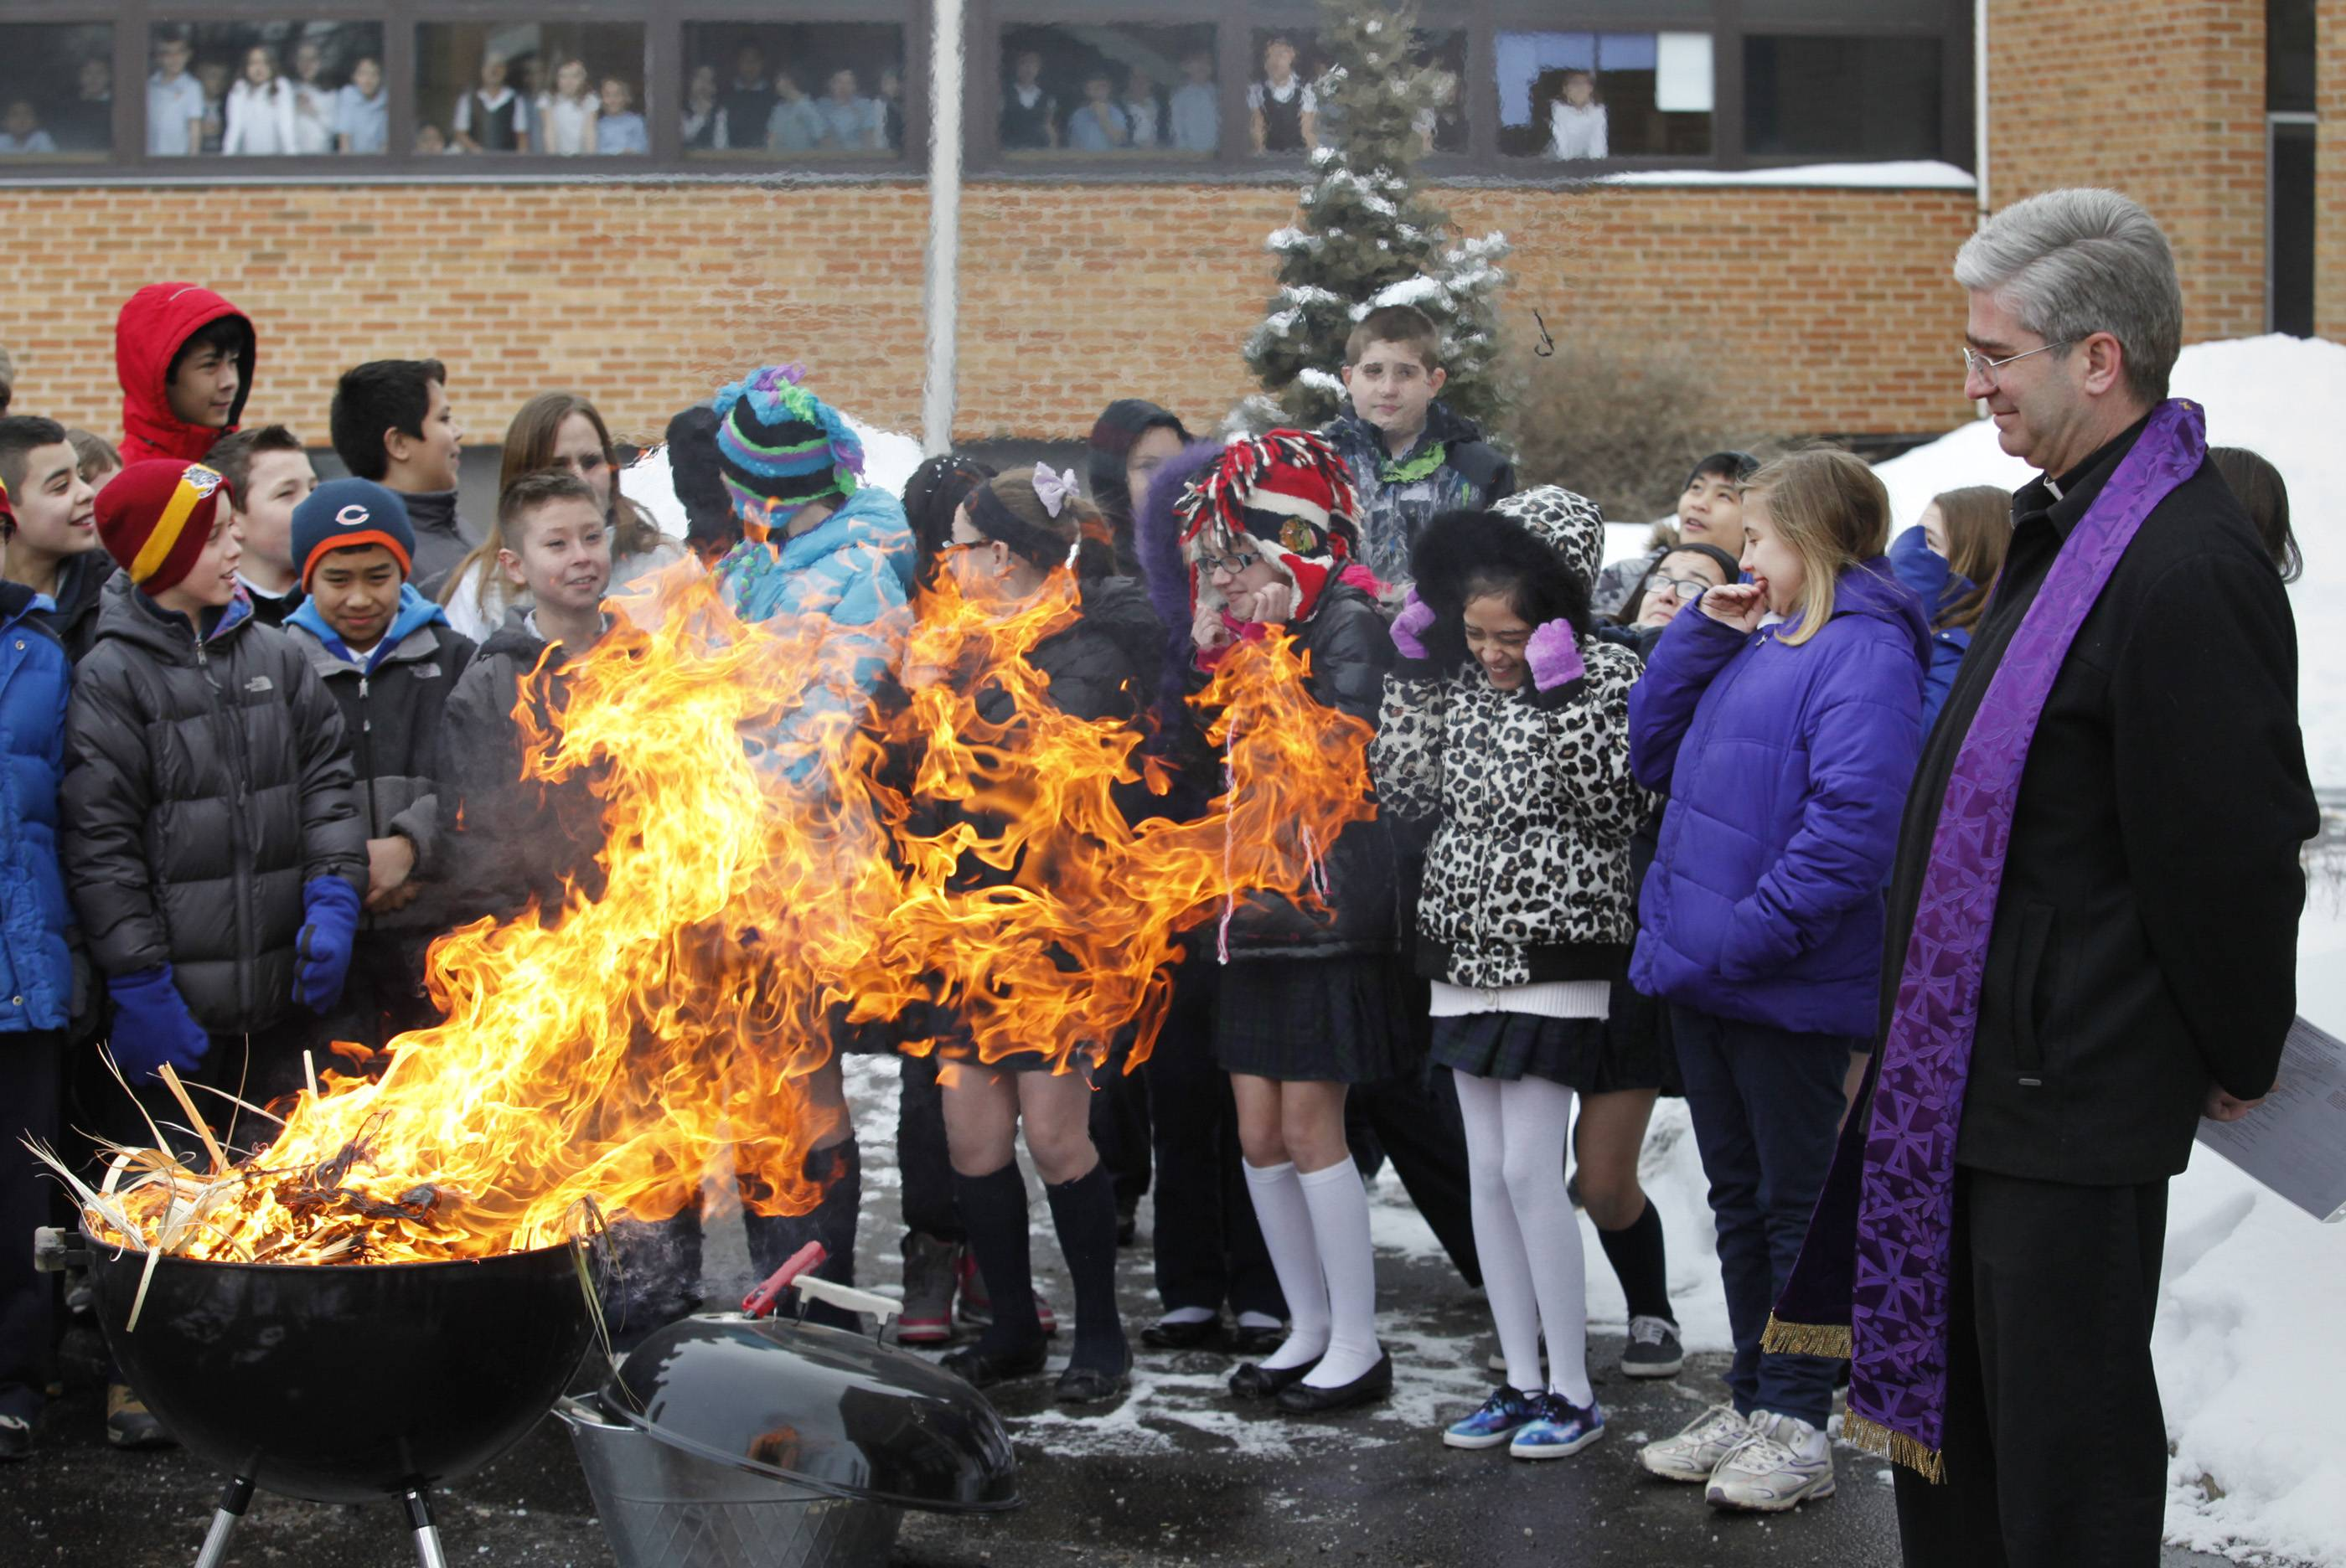 Students from St. Laurence Catholic School in Elgin have varying reactions to the flames and smoke as the Rev. Andrew Mulcahey burns palms Tuesday in preparation for Ash Wednesday.